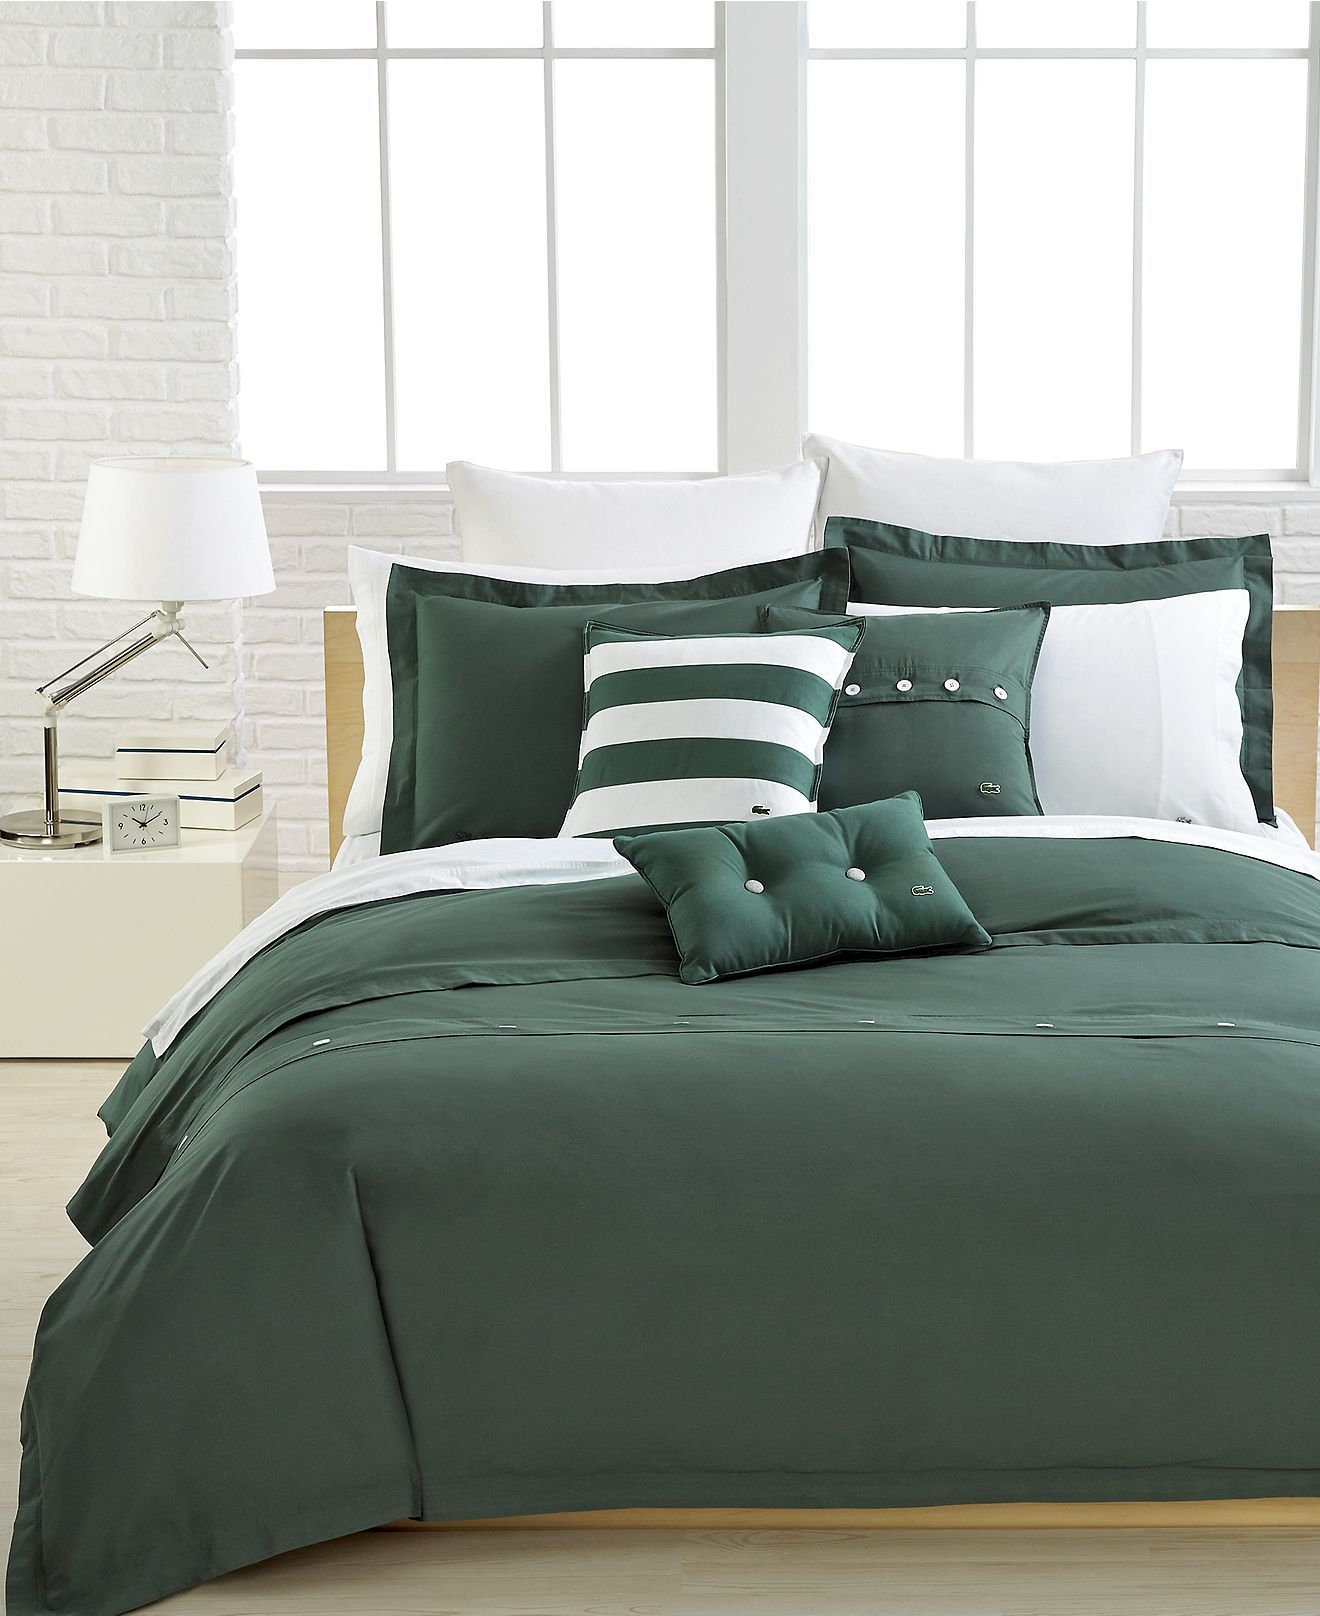 lacoste bedding solid green brushed twill comforter and duvet lacoste bedding solid green brushed twill comforter and duvet cover sets bedding collections